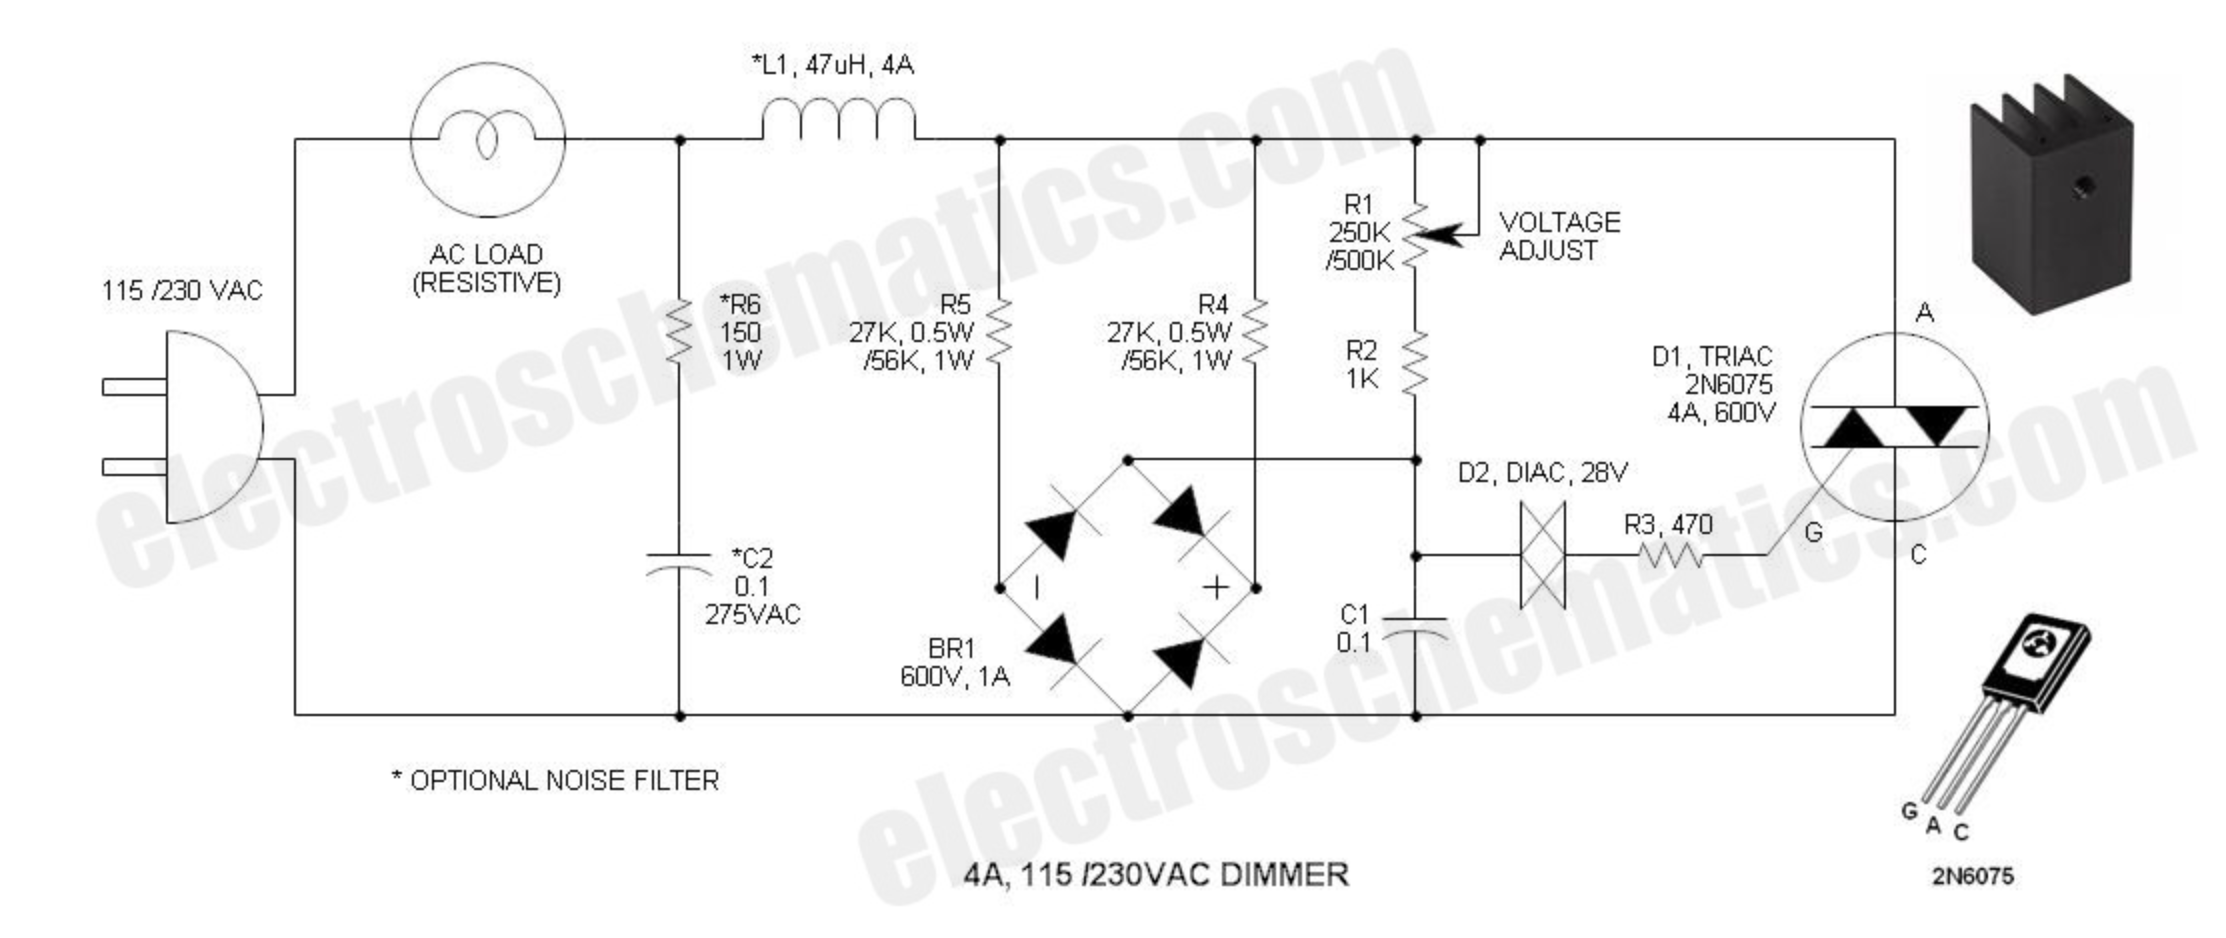 Unique Electrical Wiring Diagram Dimmer Switch diagram